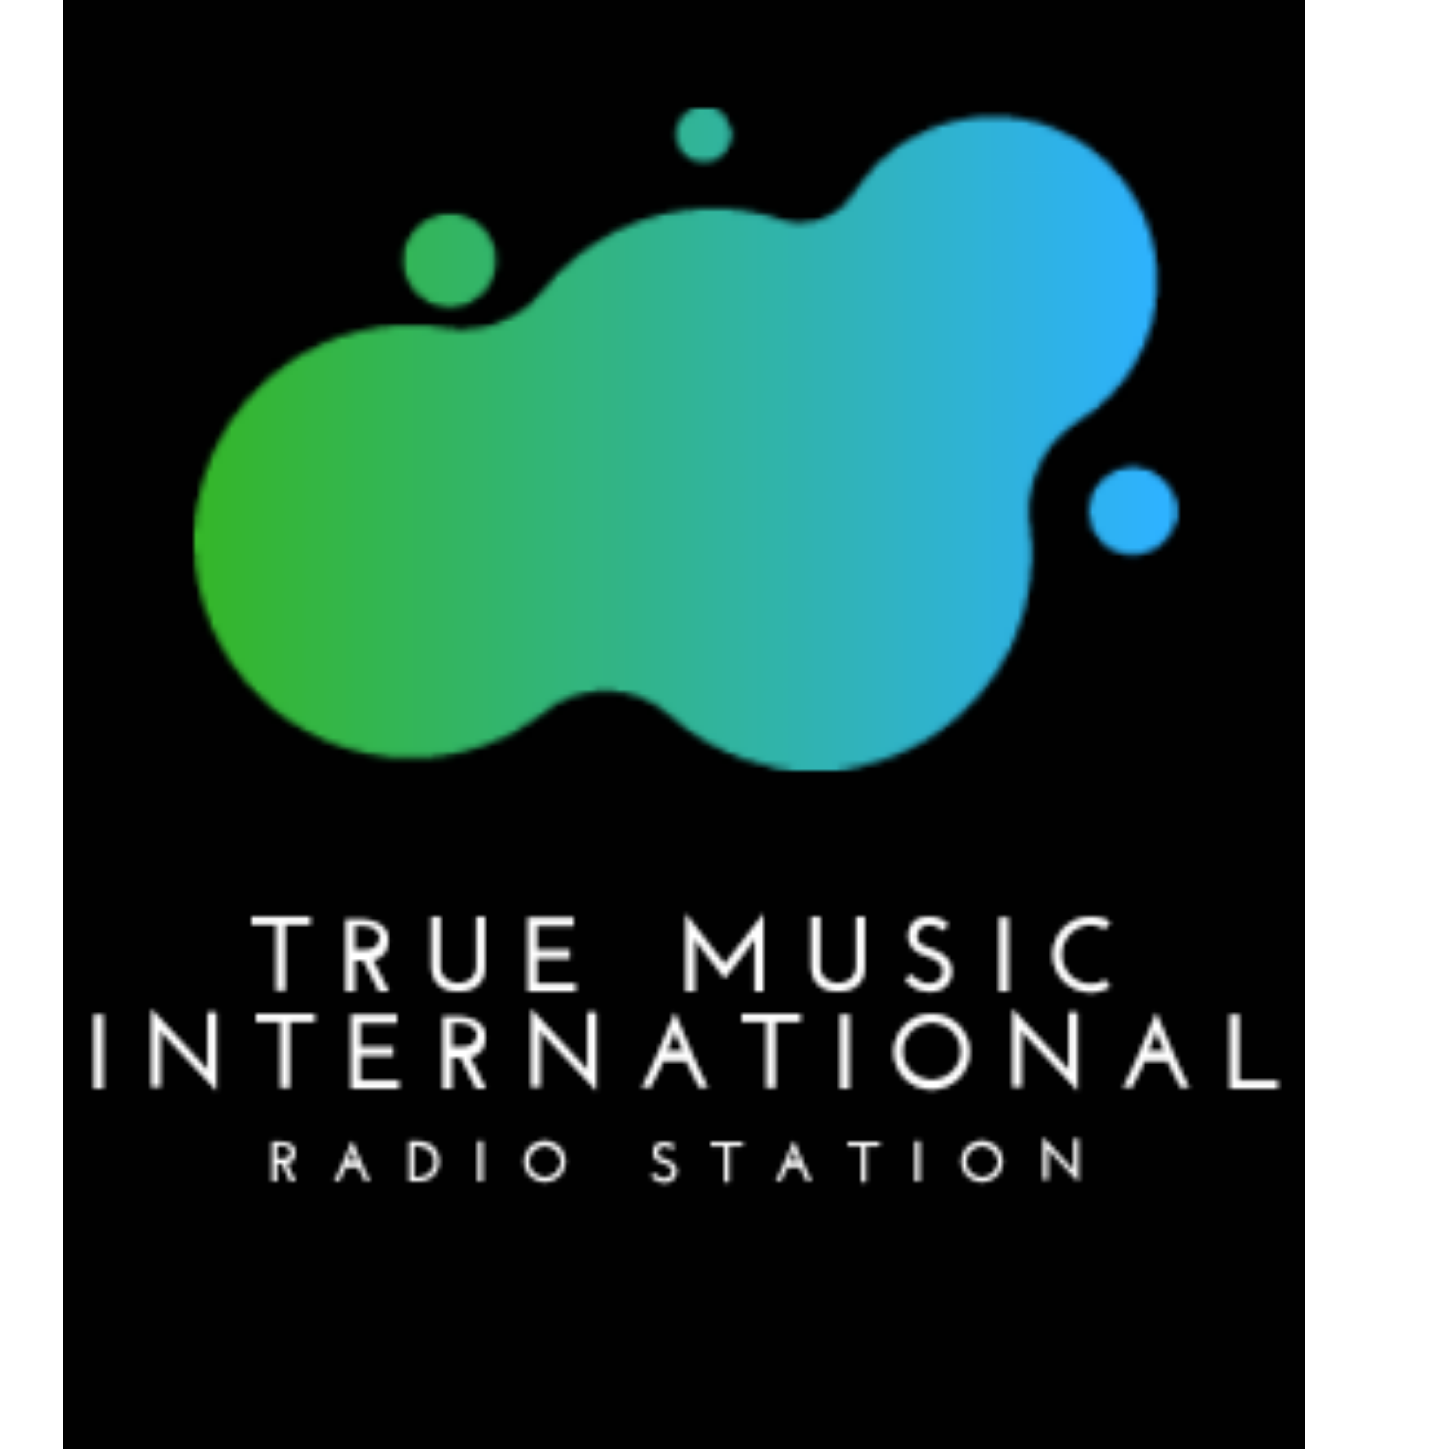 True music International